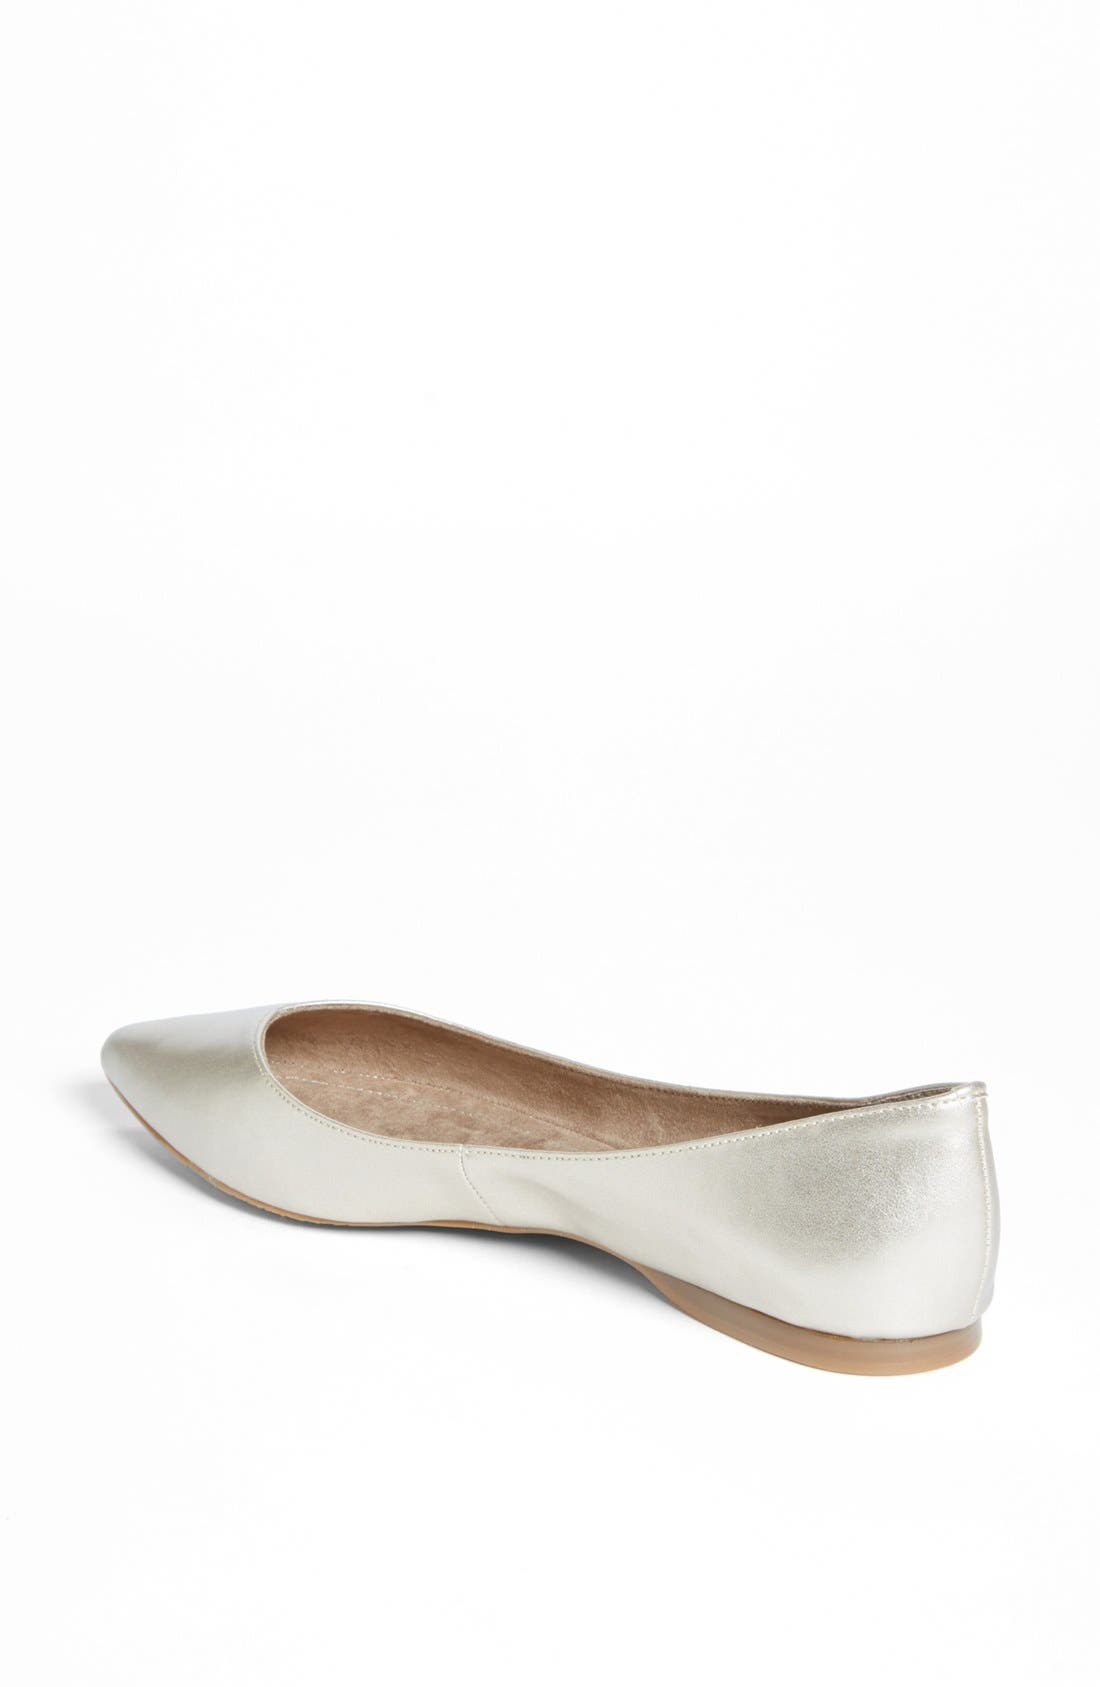 'Moveover' Pointy Toe Flat,                             Alternate thumbnail 38, color,